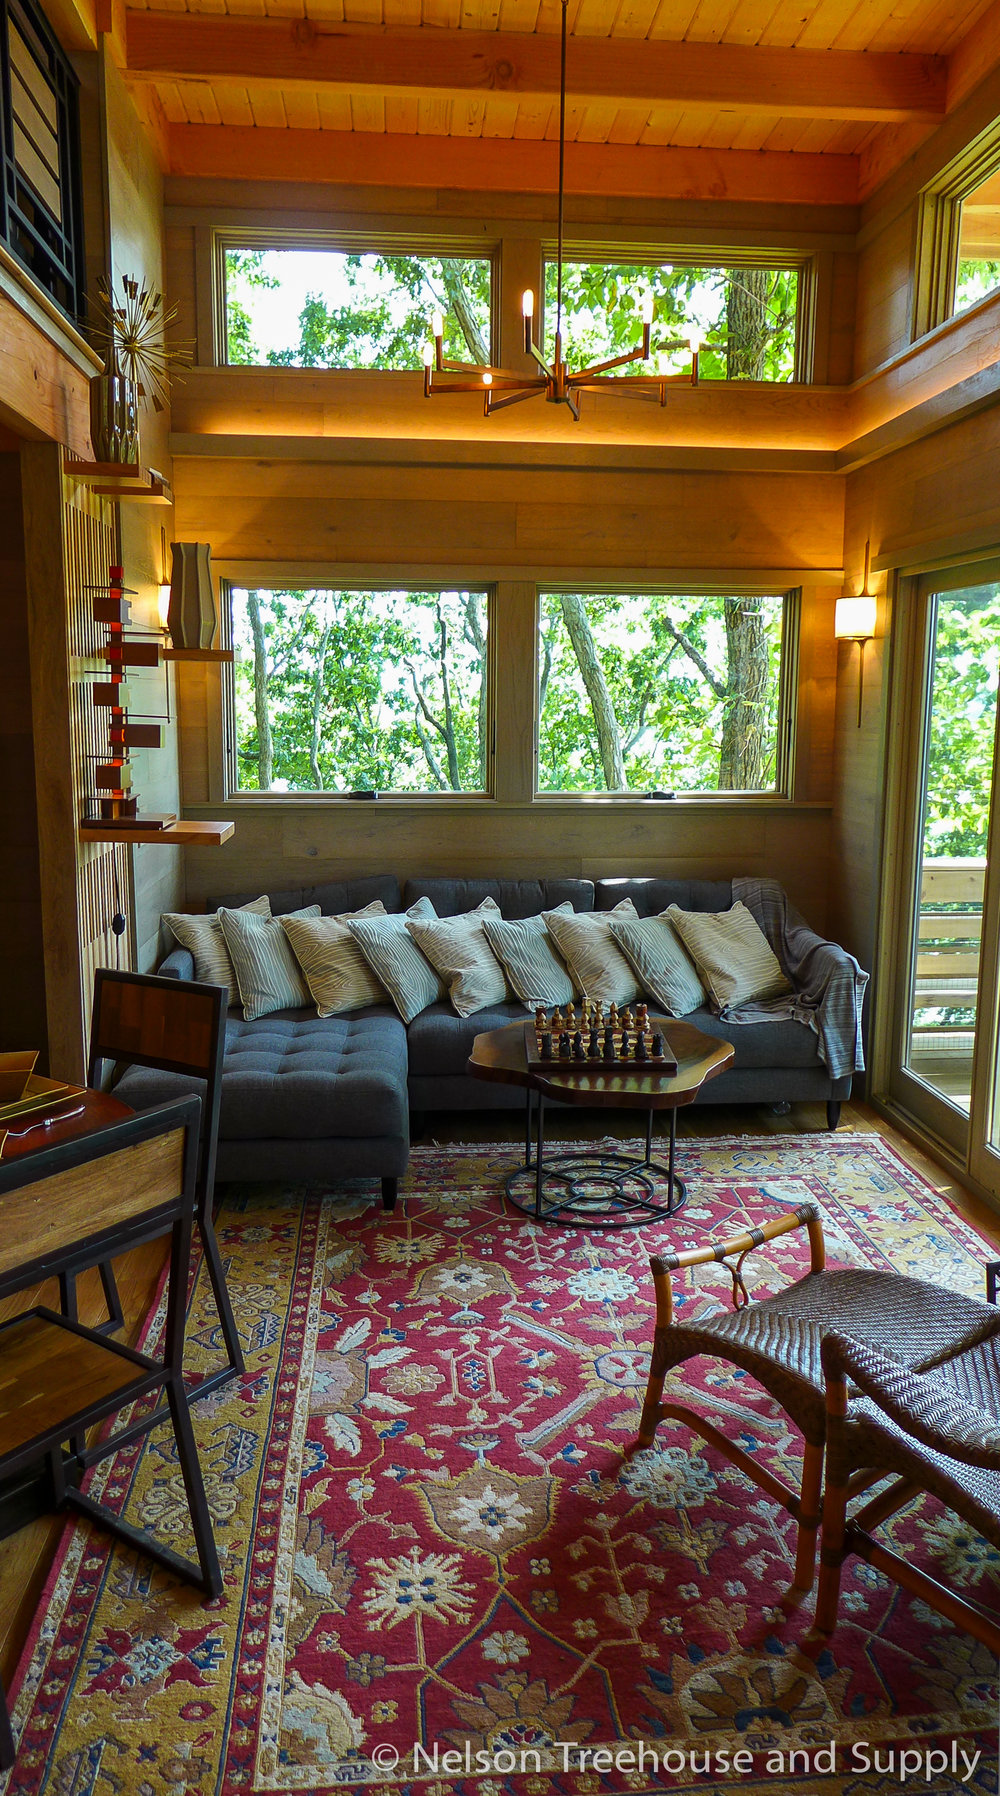 frank-lloyd-wright-treehouse-living room